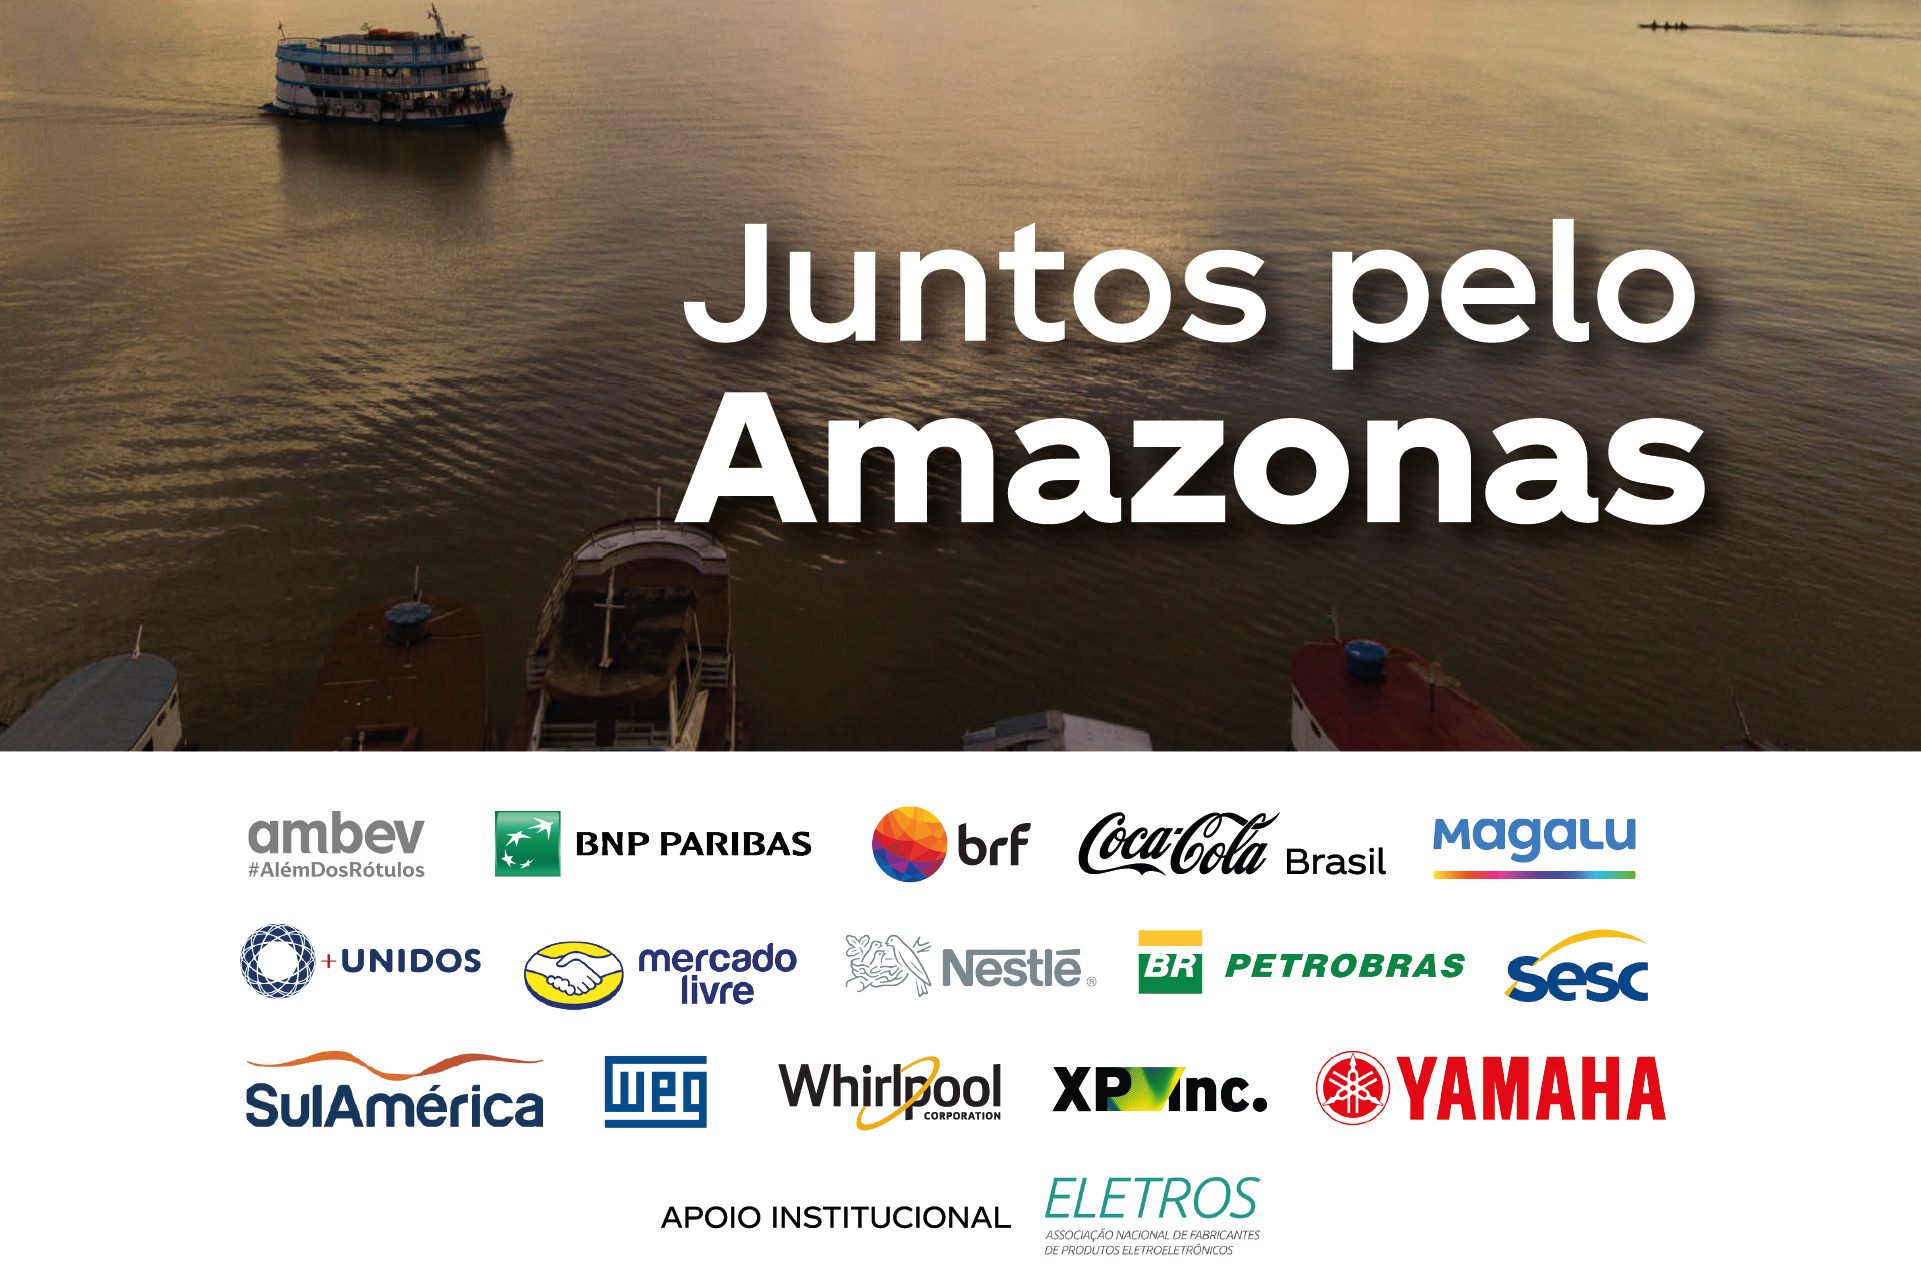 COMPANIES COME IN SOLIDARY ACTION TO HELP AMAZONAS